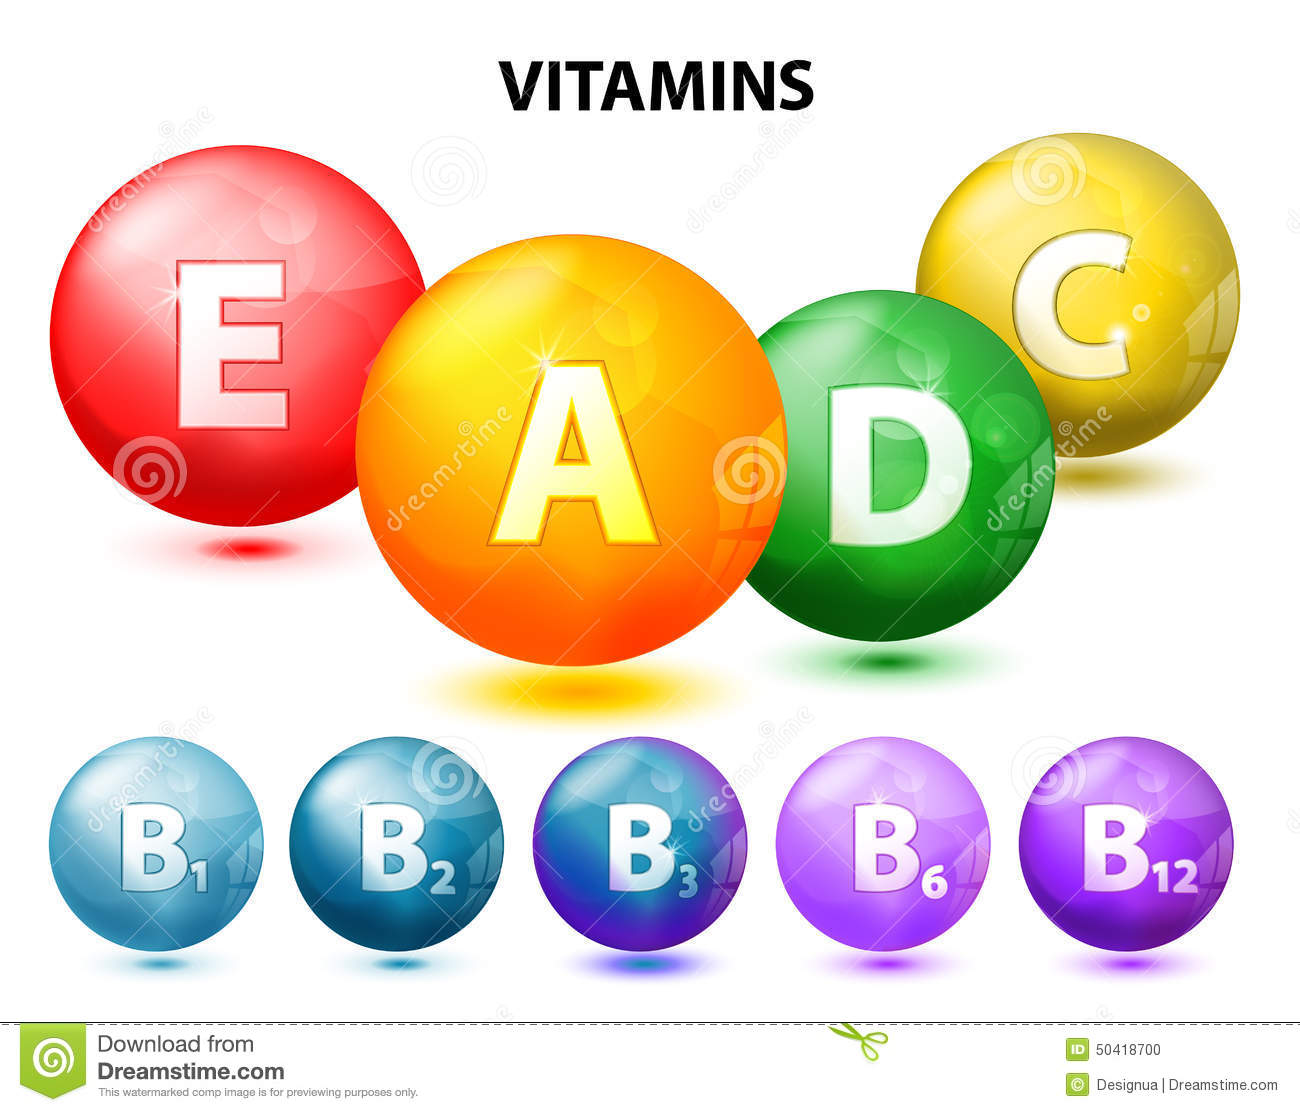 Vitamins Stock Vector - Image: 50418700